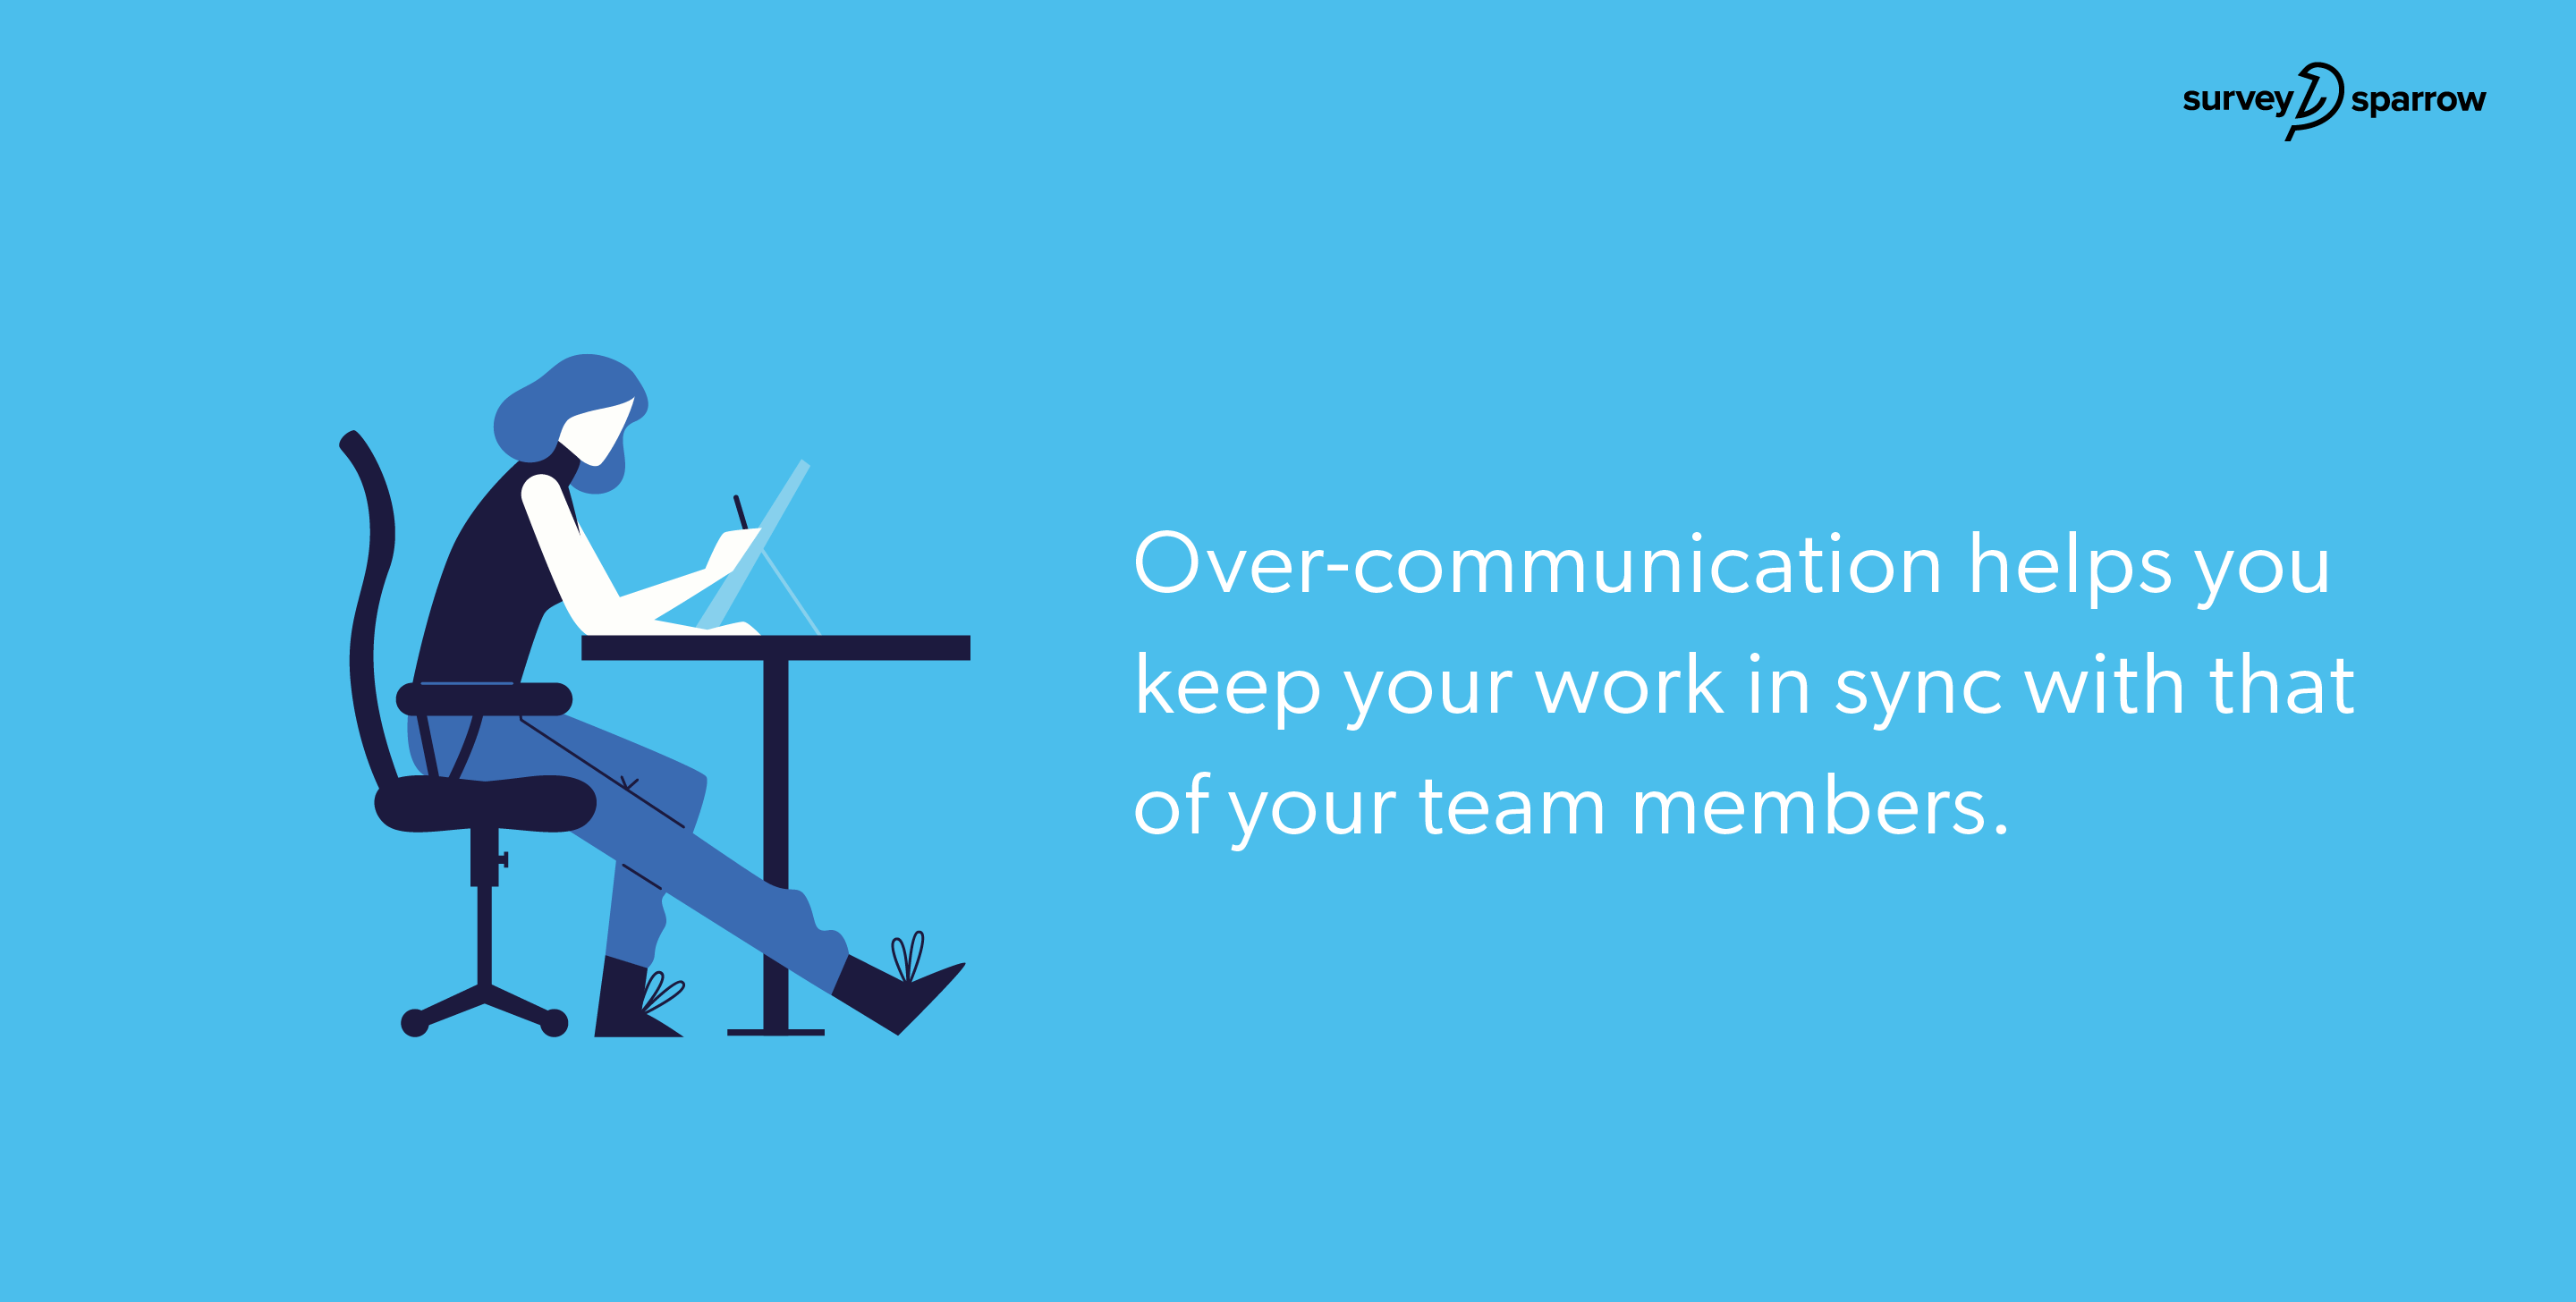 Over-communication helps you keep your work in sync with that of your team members.